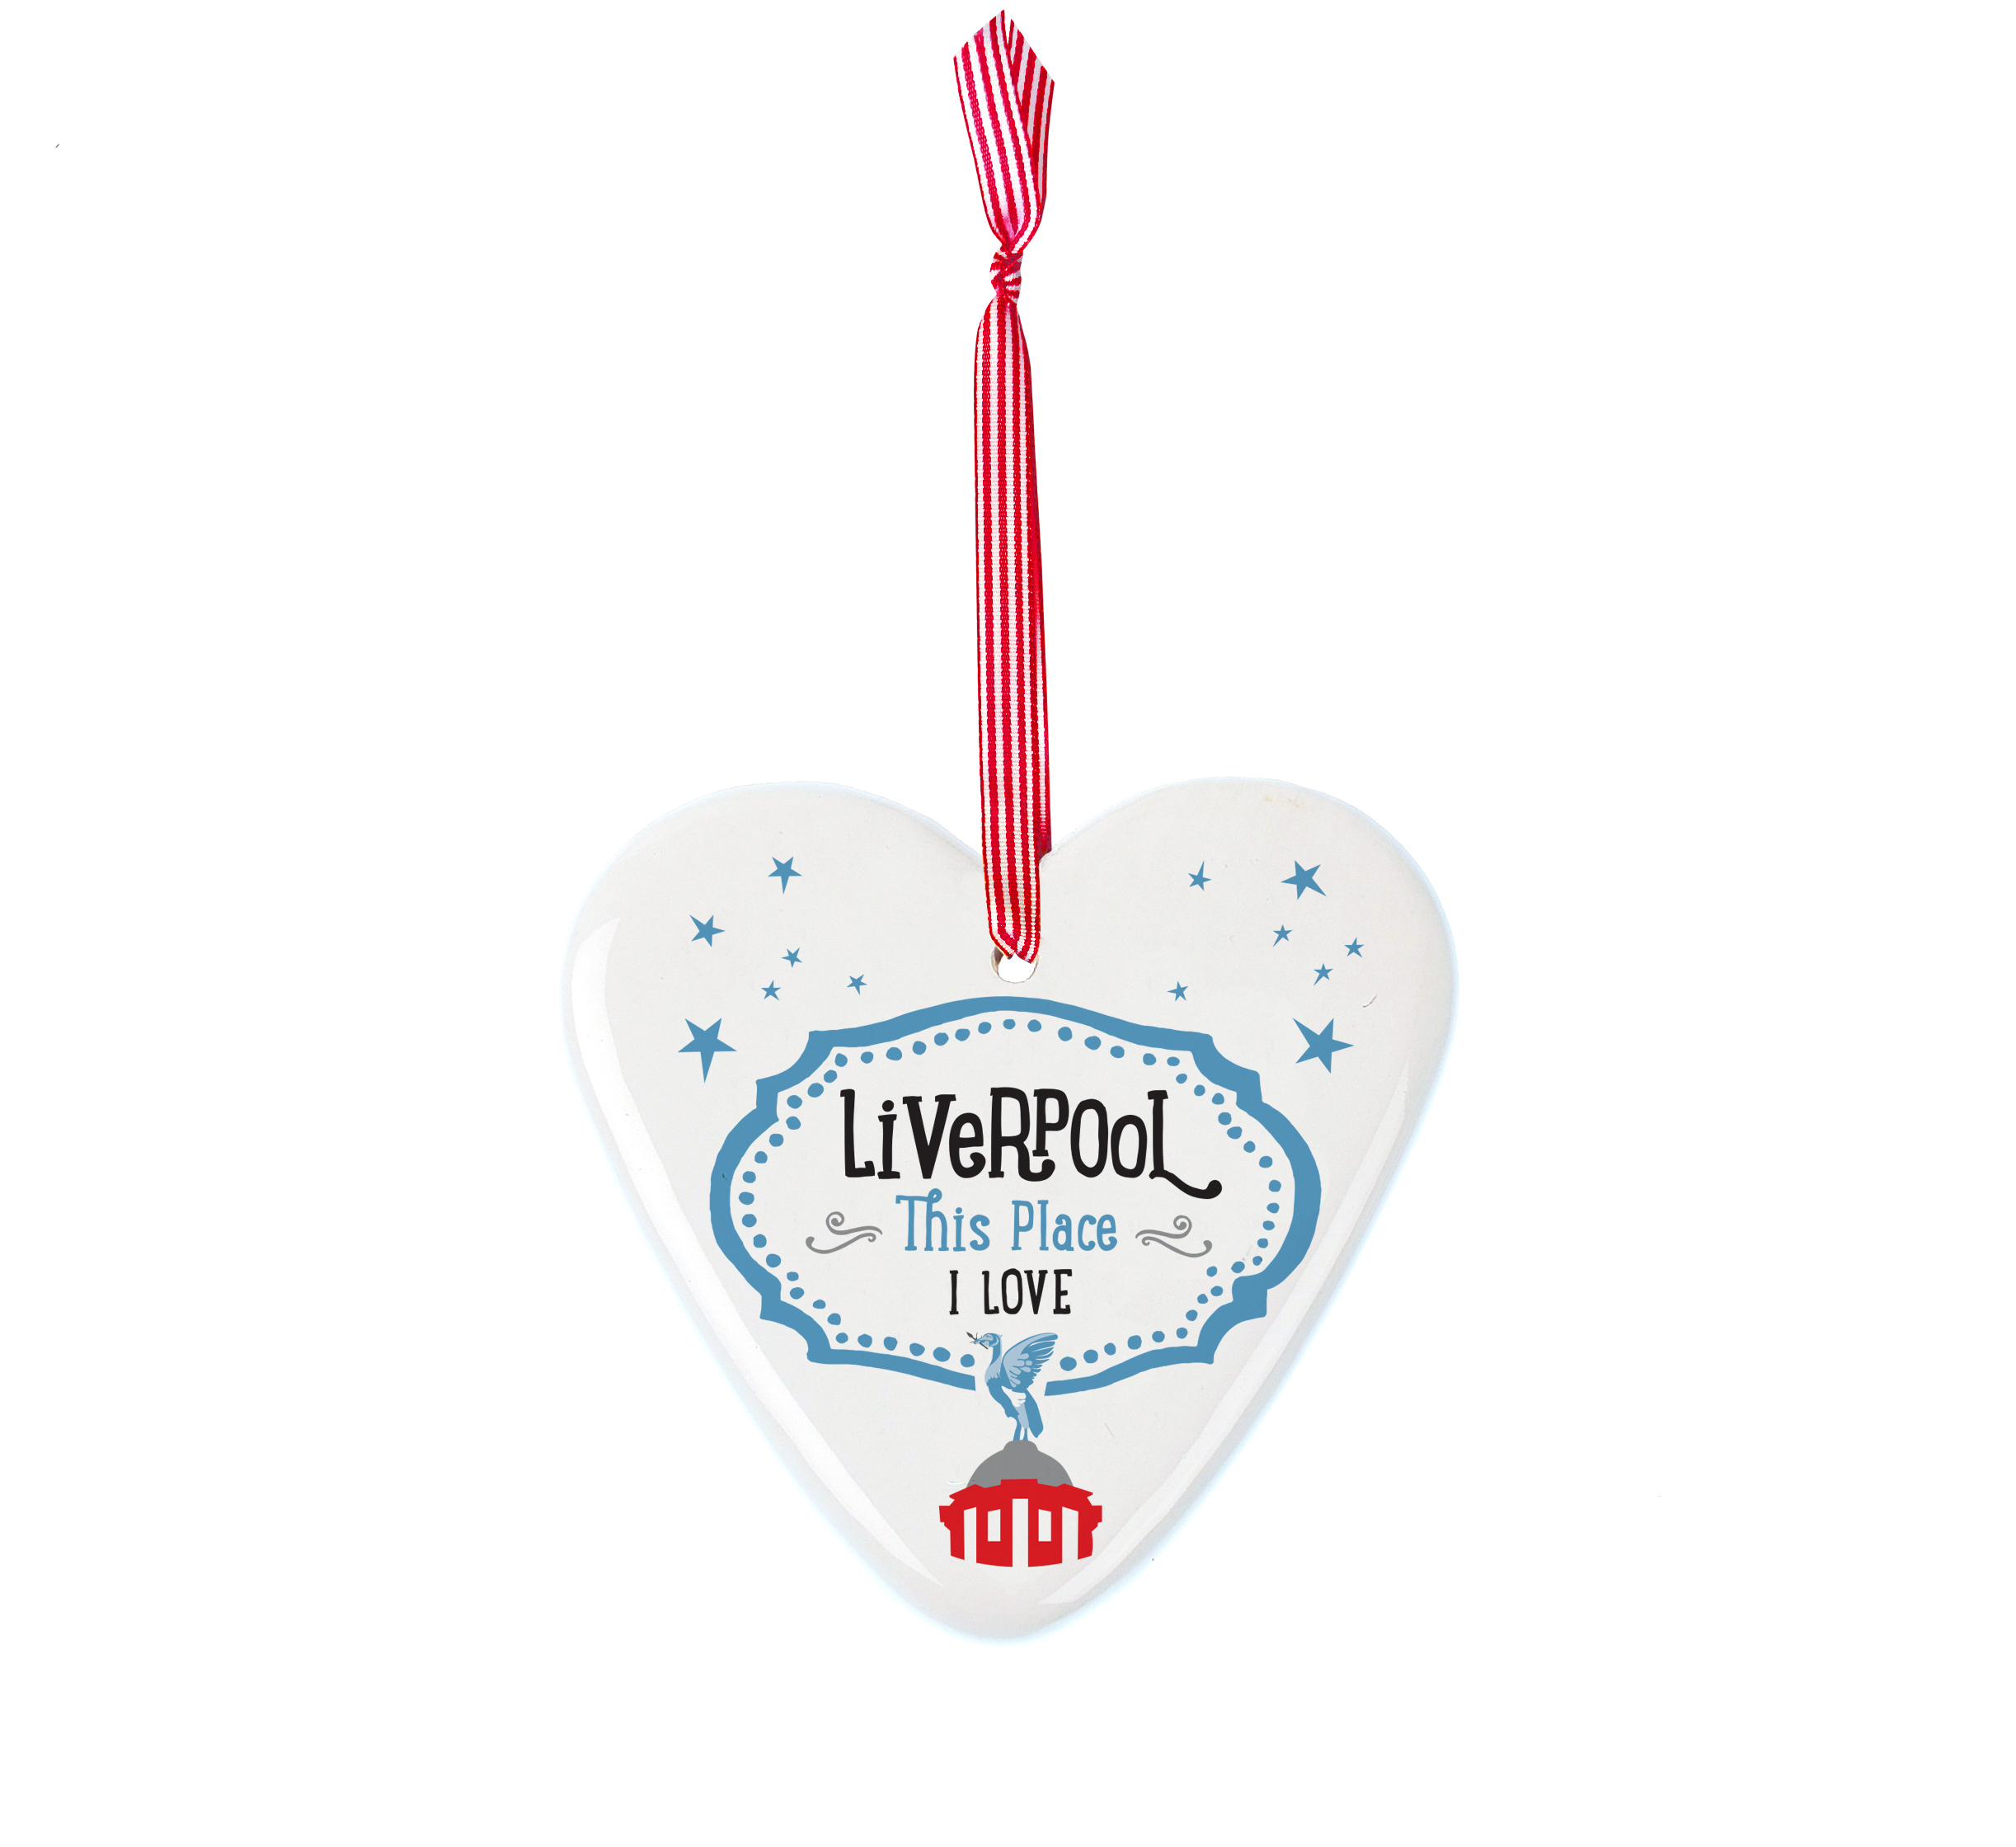 Liverpool Hanging Heart – 'This Place I Love' Heart